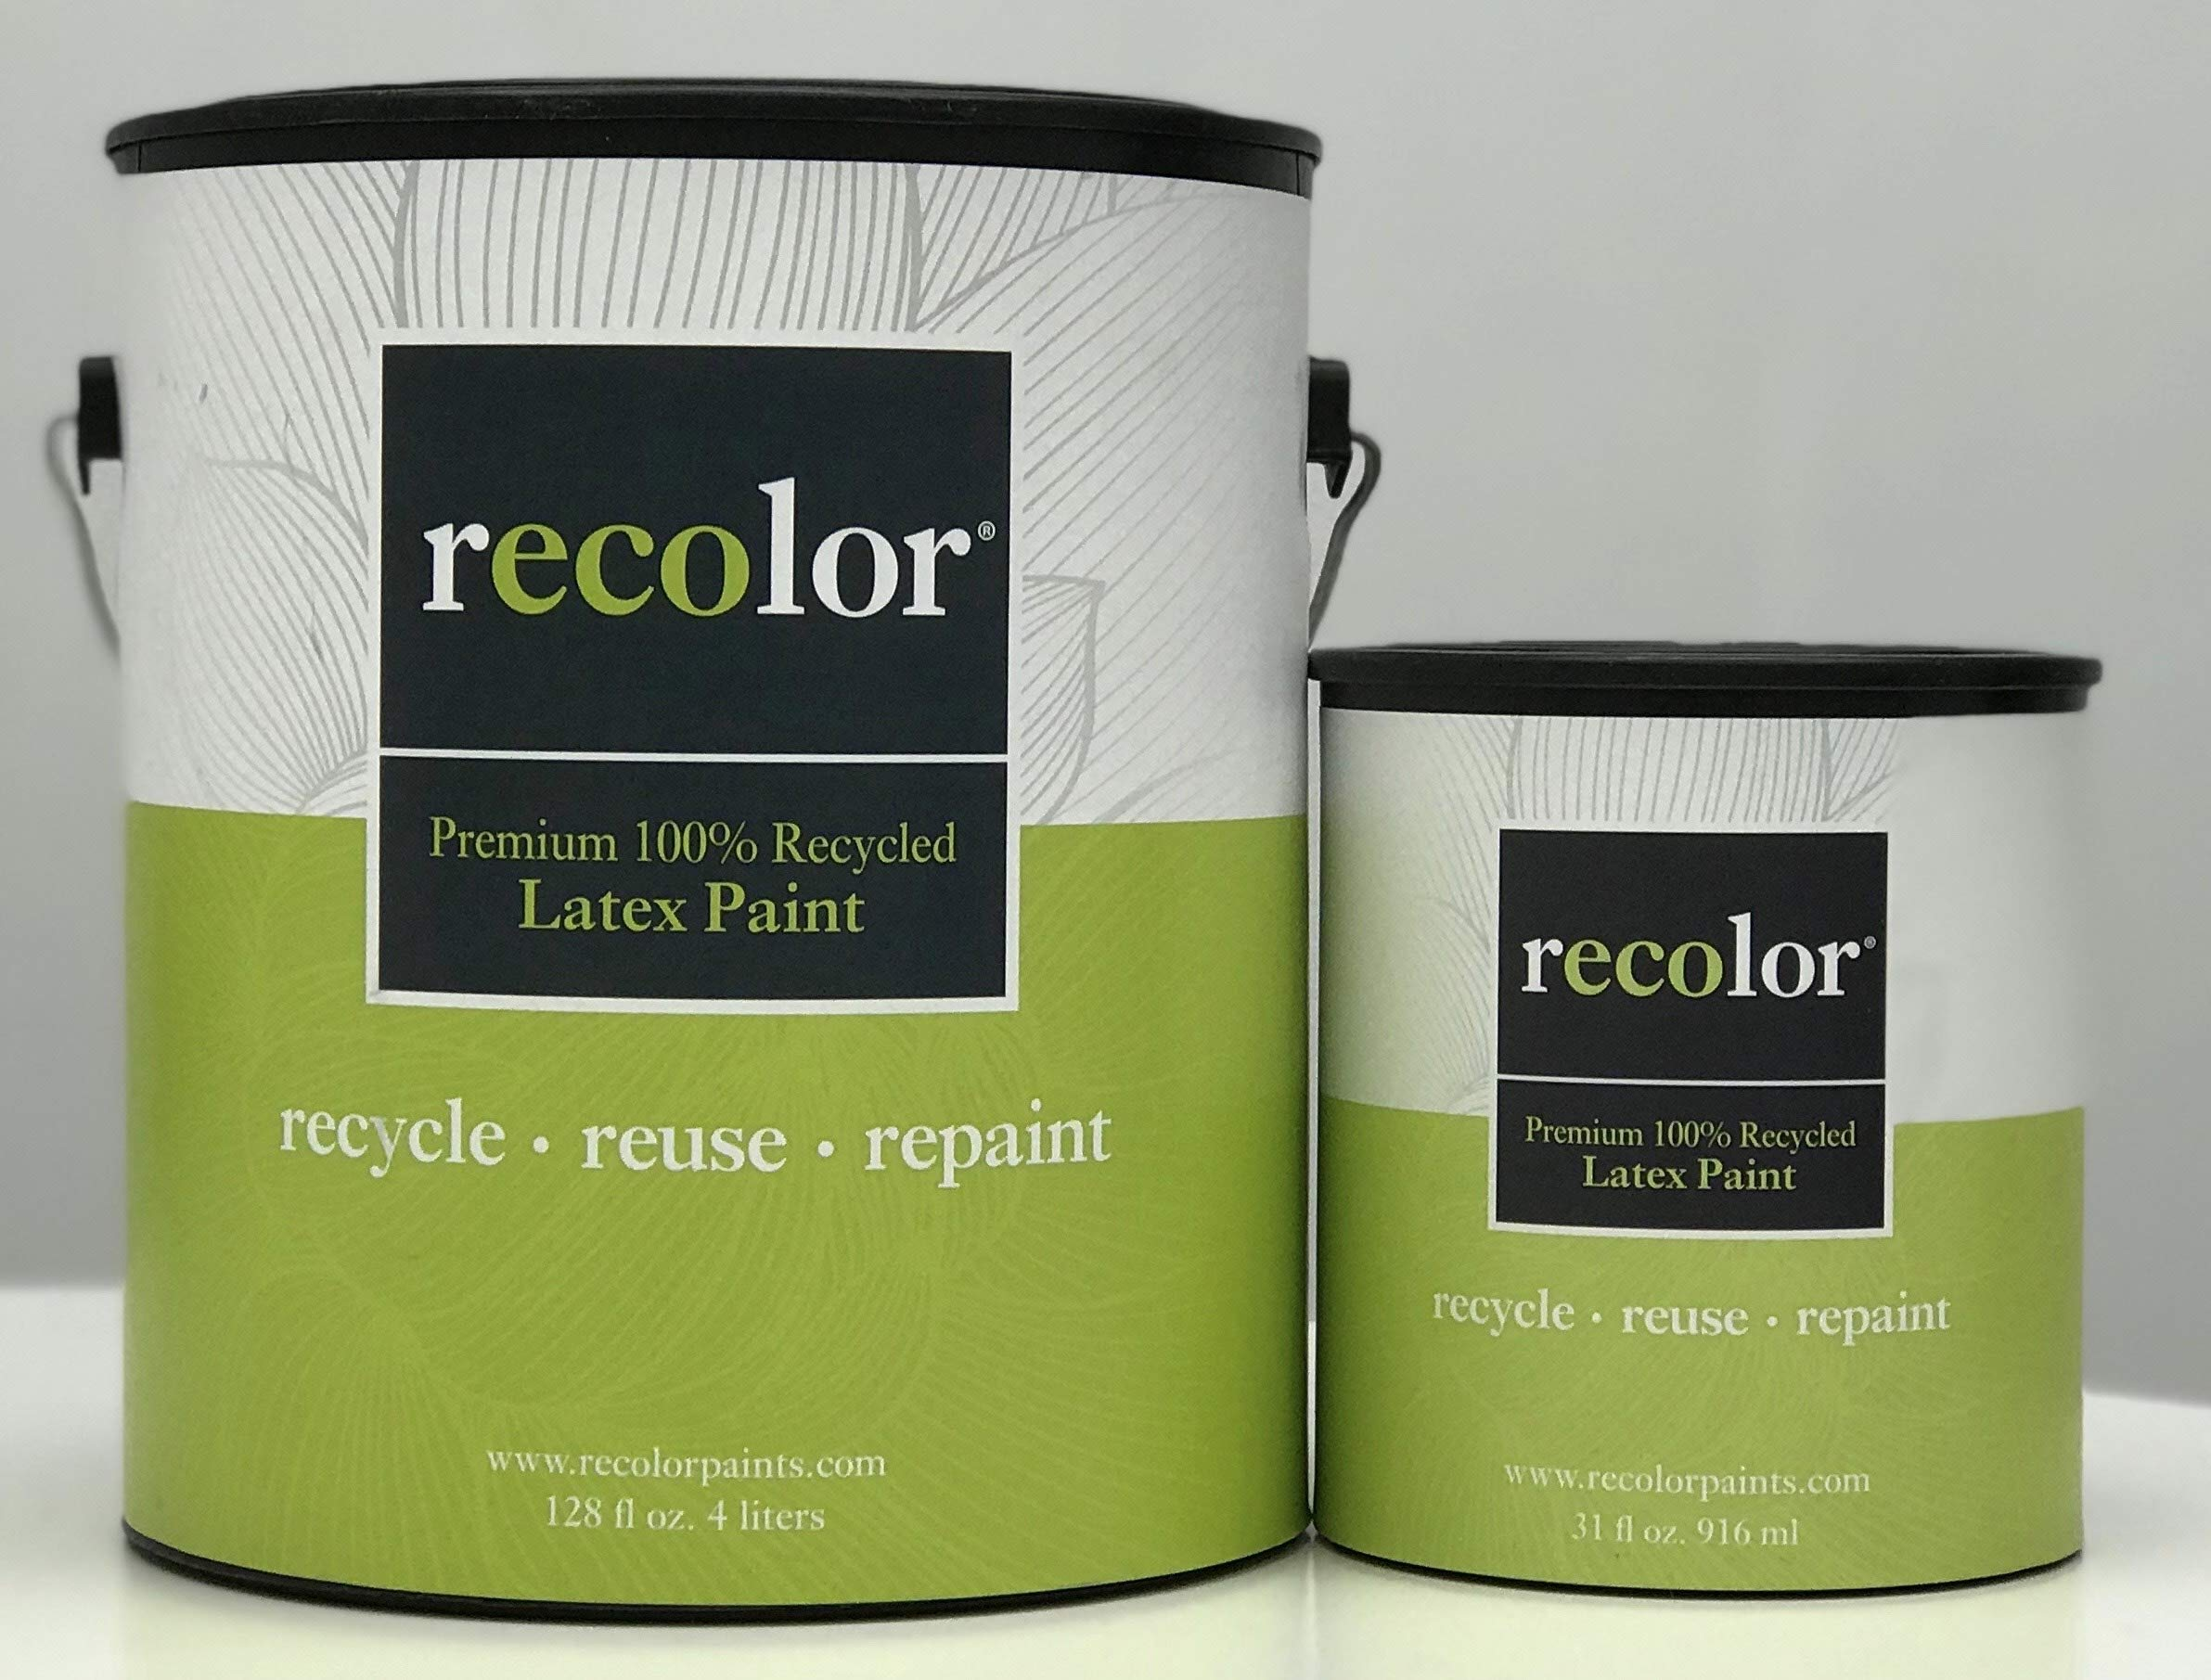 RECOLOR Paint 100% Recycled Interior Latex Paint Wall Finish, 1 Gallon, Interior - Clay